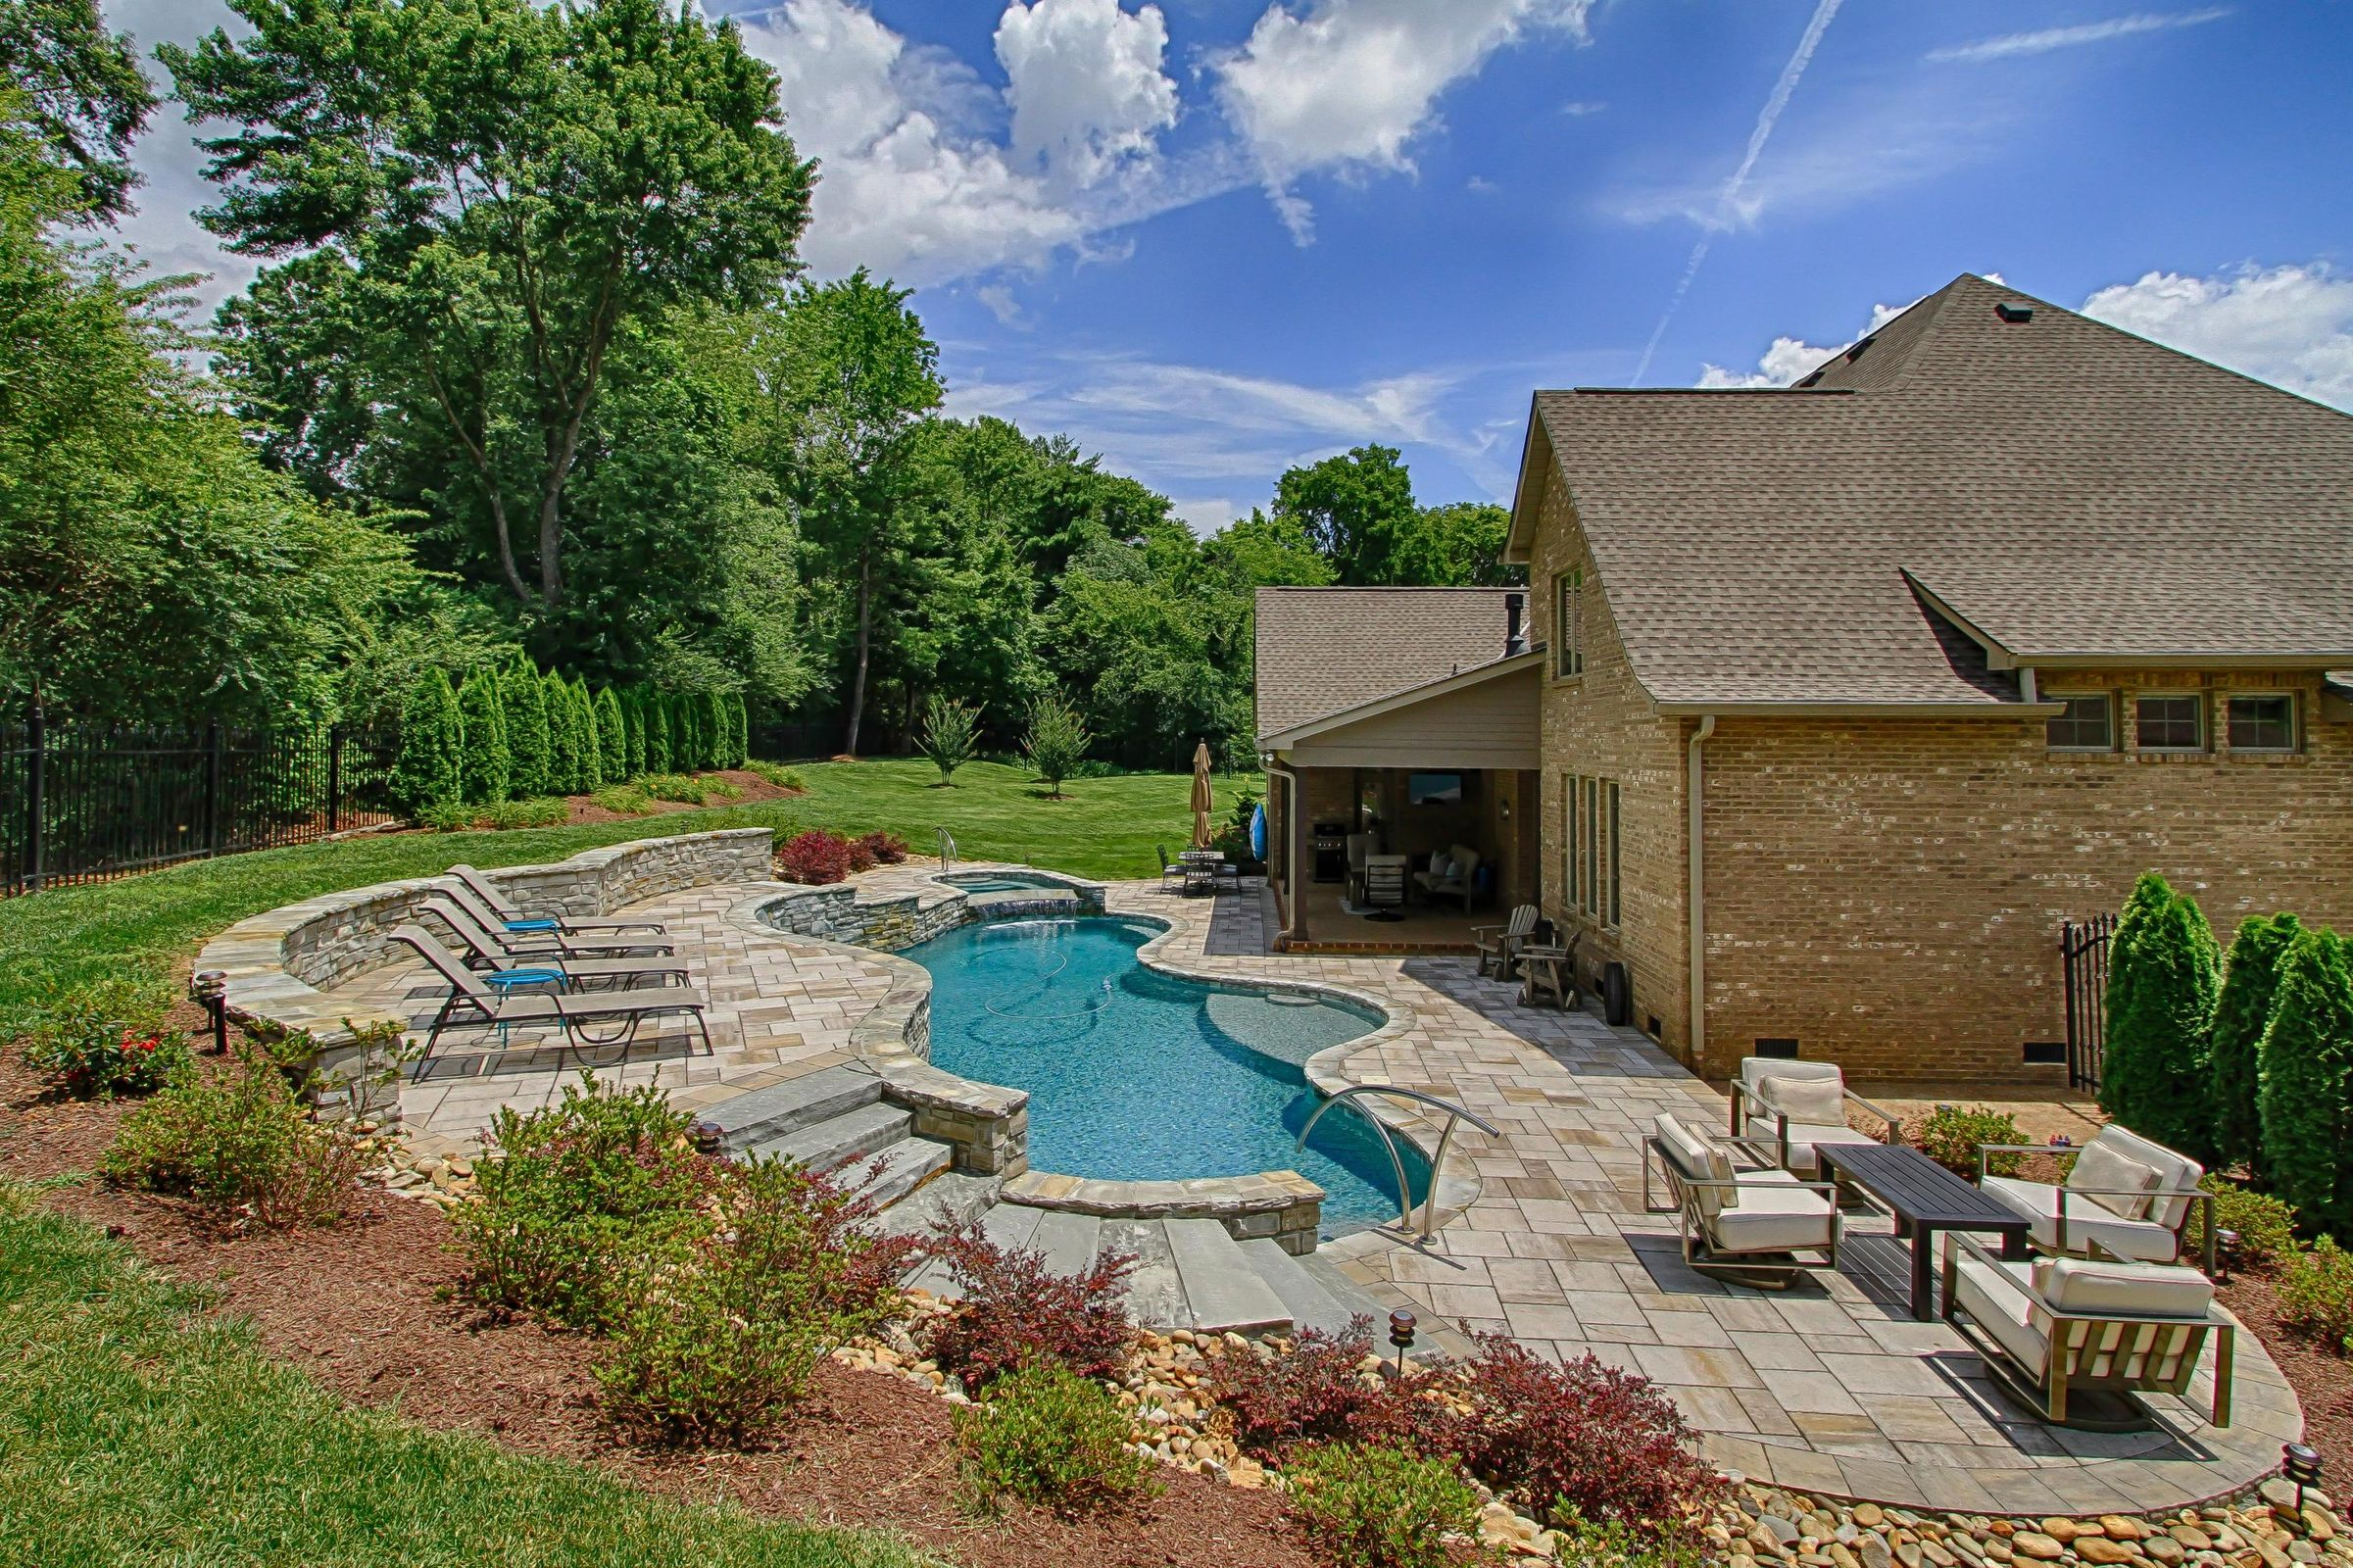 pool area and private yard